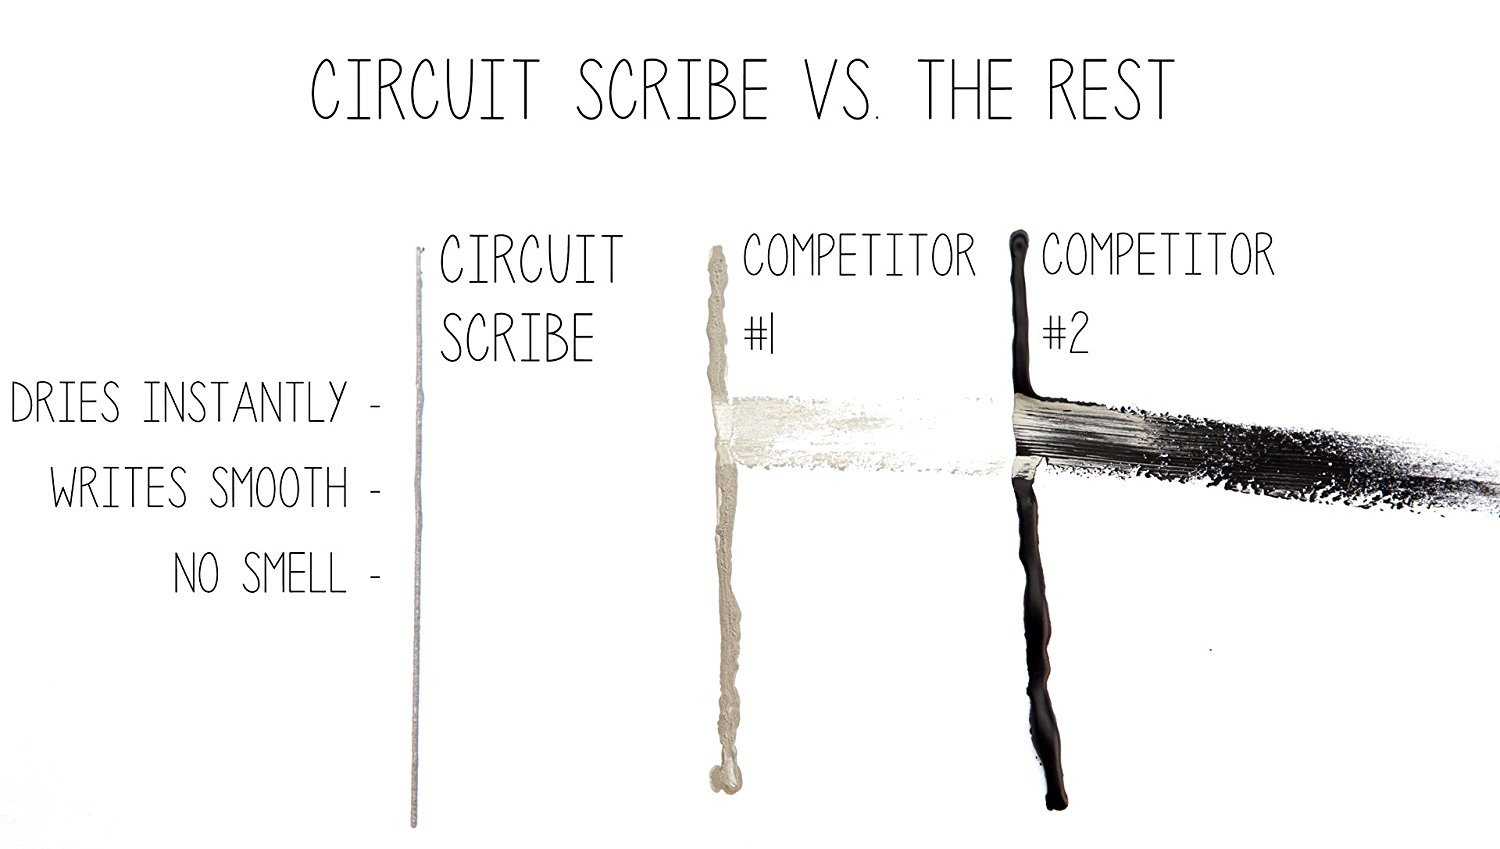 Circuit Scribe Non Toxic Conductive Silver Ink Pen Award Winning Creating A Design That Makes Circuits And